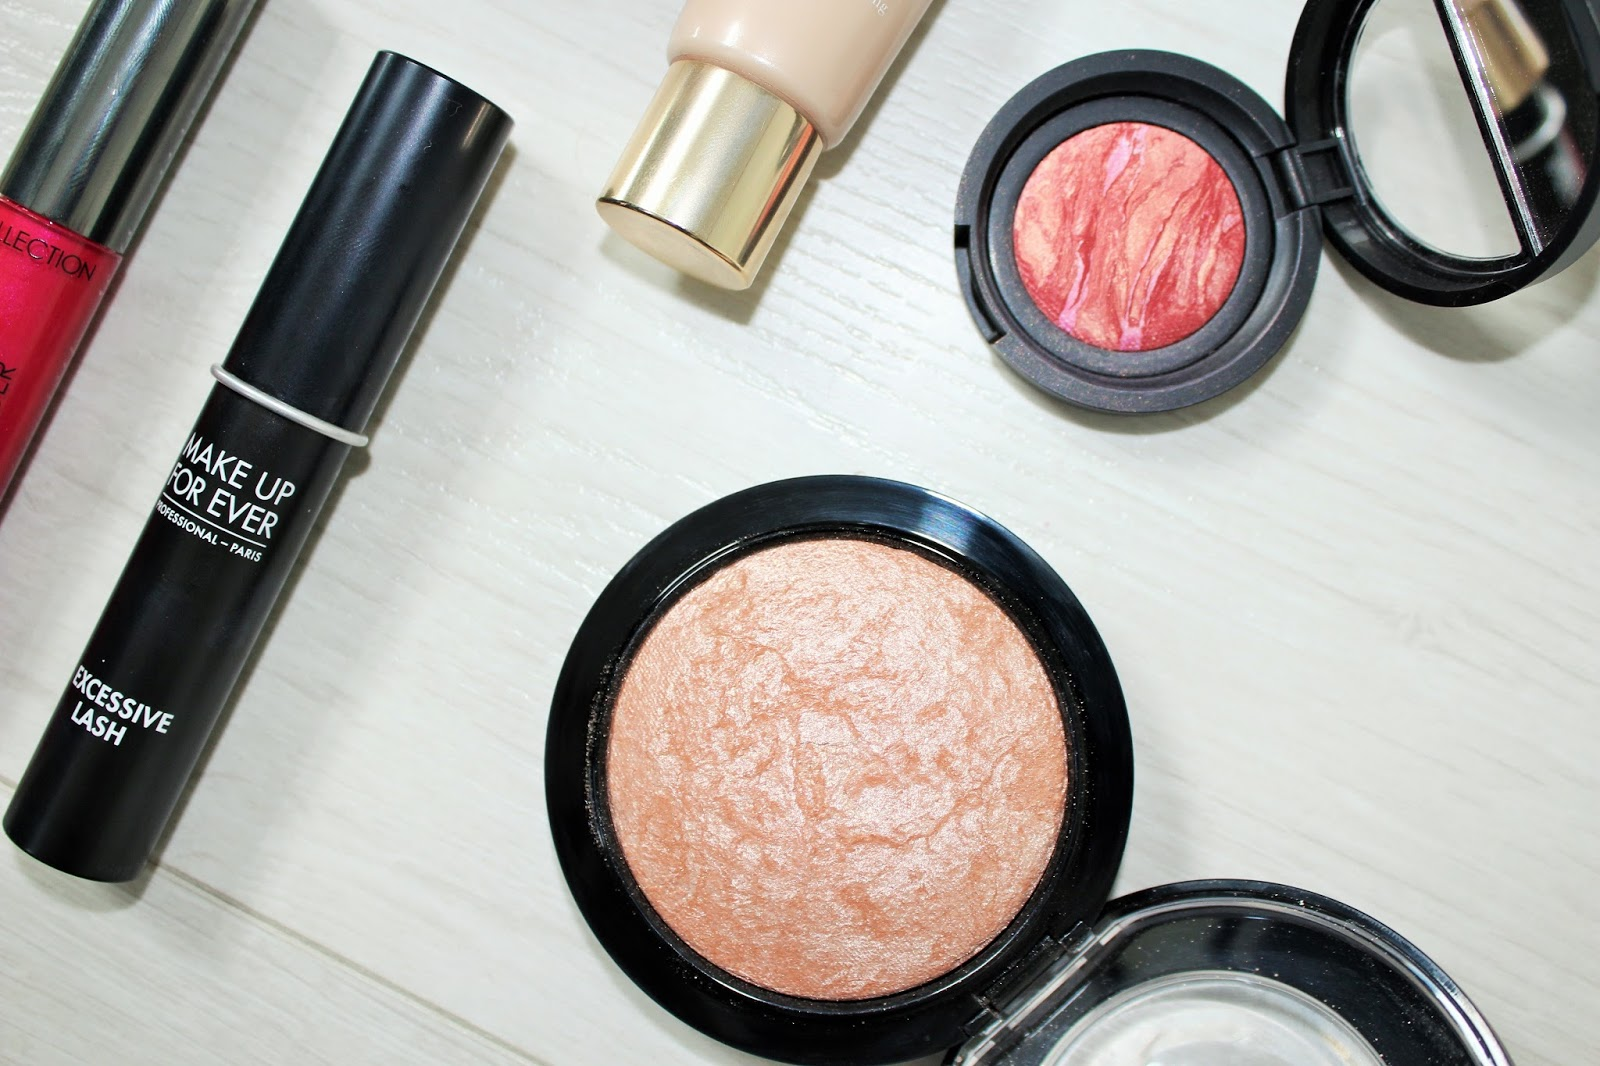 Sunsets and Raspberry Kisses 5 - Laura Geller Baked Blush-n-Brighten in Tropic Hues and Mac Soft and Gentle